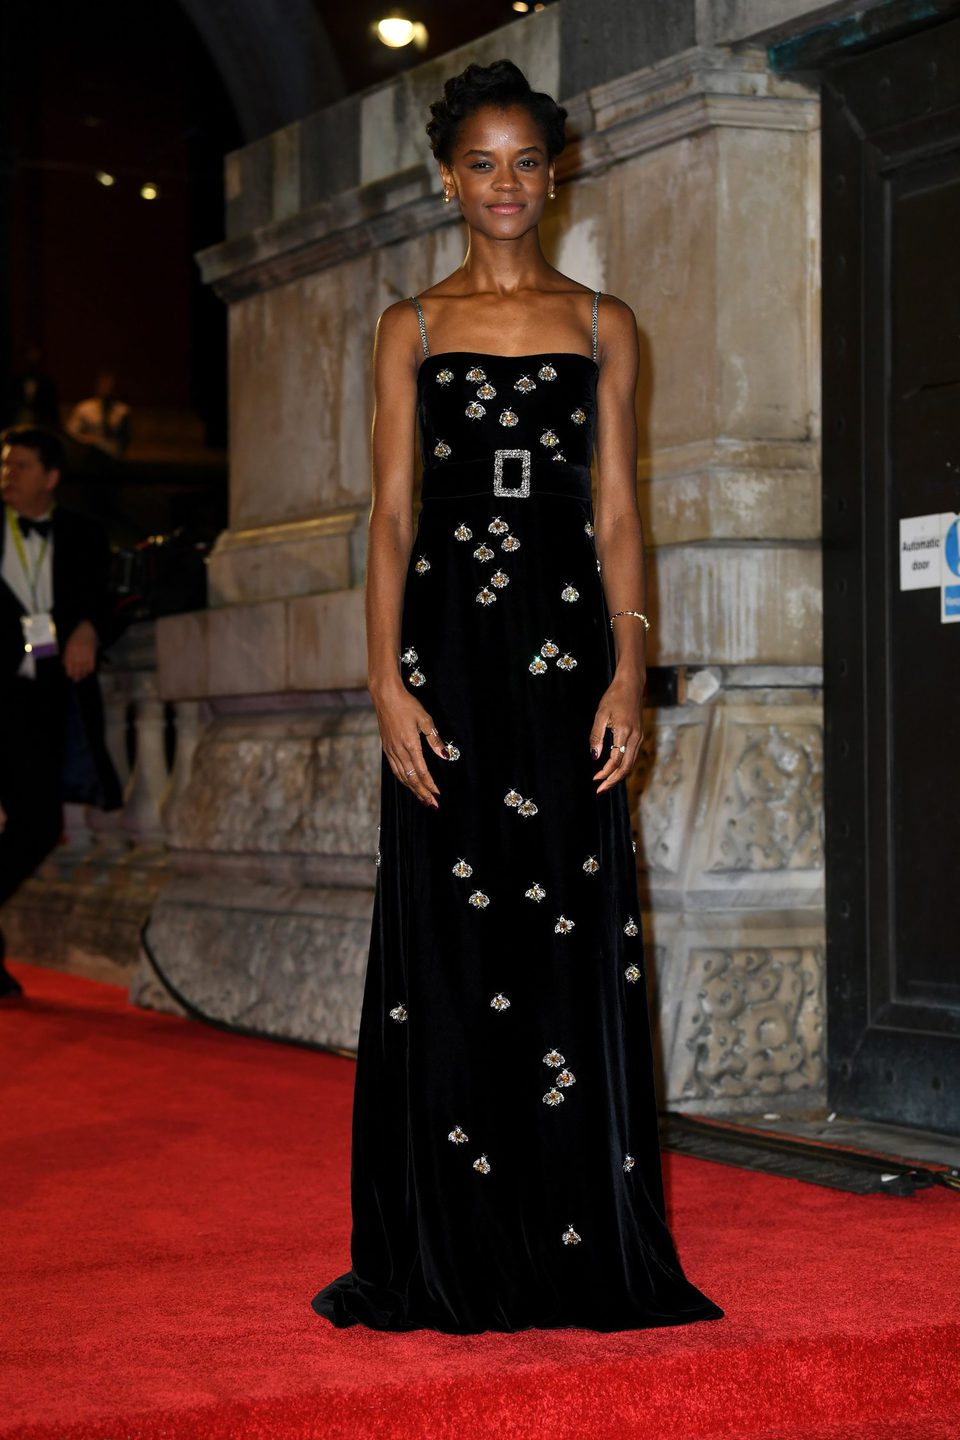 Letitia Wright at the BAFTAs 2018 red carpet